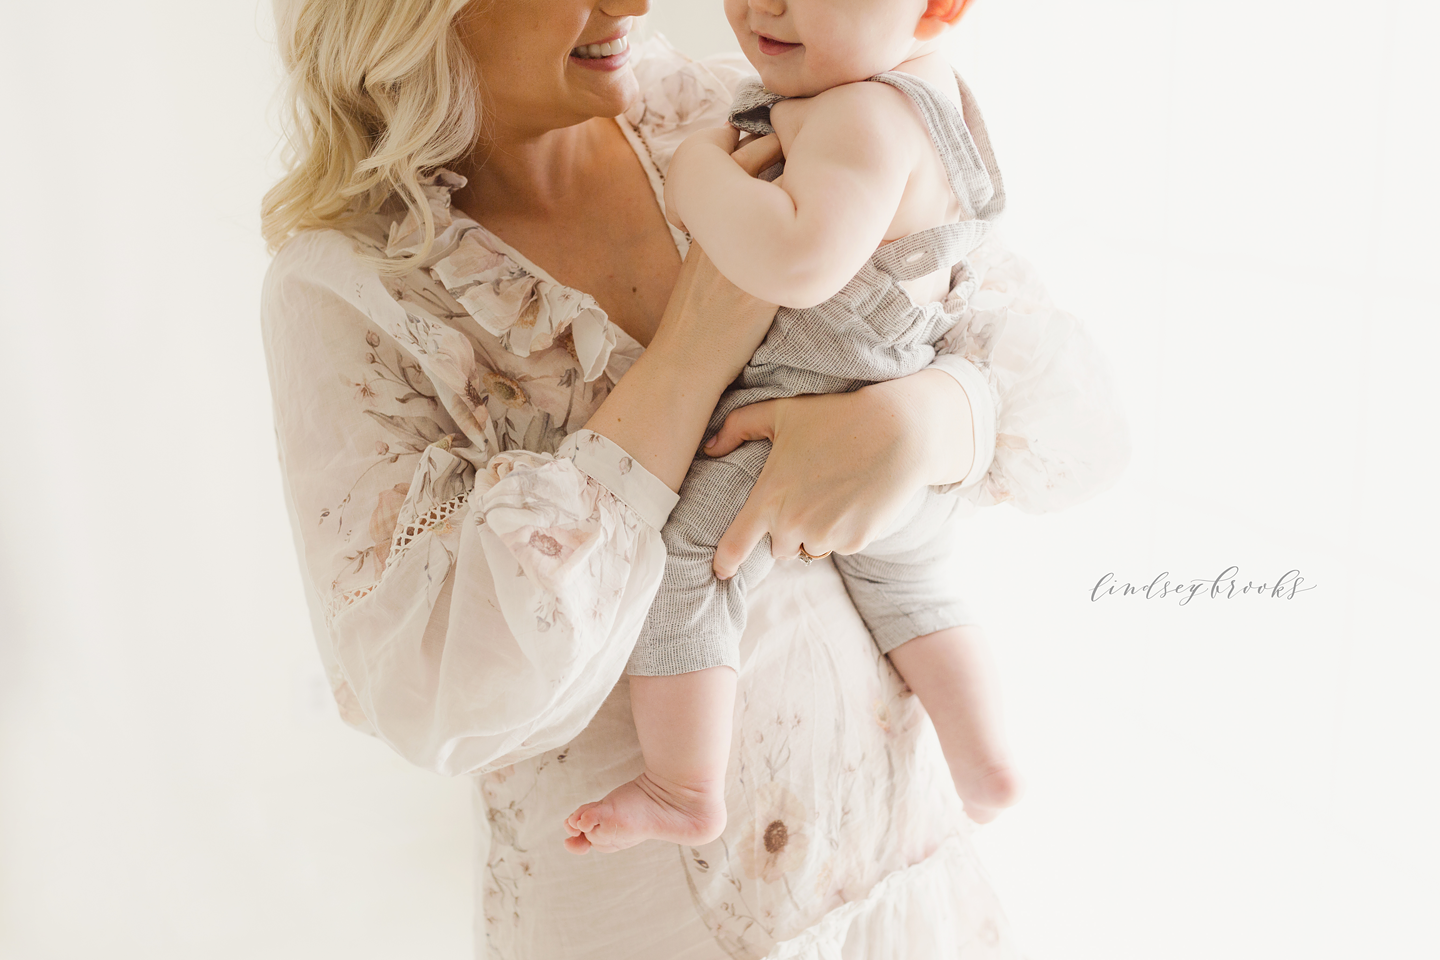 oklahoma-city-photographers-newborn-baby-motherhood-six-months-infant-child-family-photos-portraits-studio-simple-natural-light-1.png